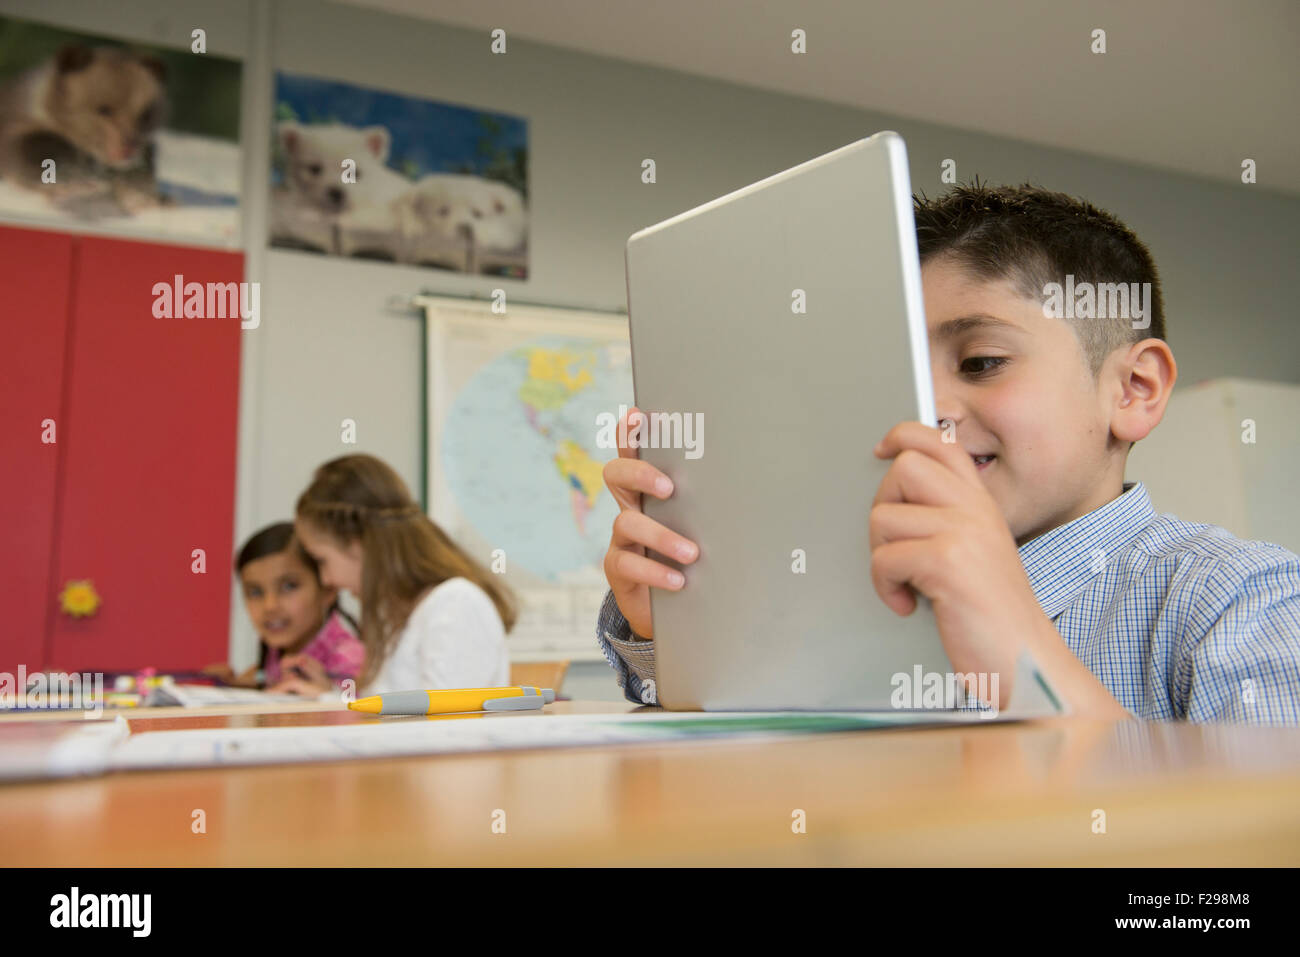 Schoolboy using a digital tablet in classroom, Munich, Bavaria, Germany - Stock Image